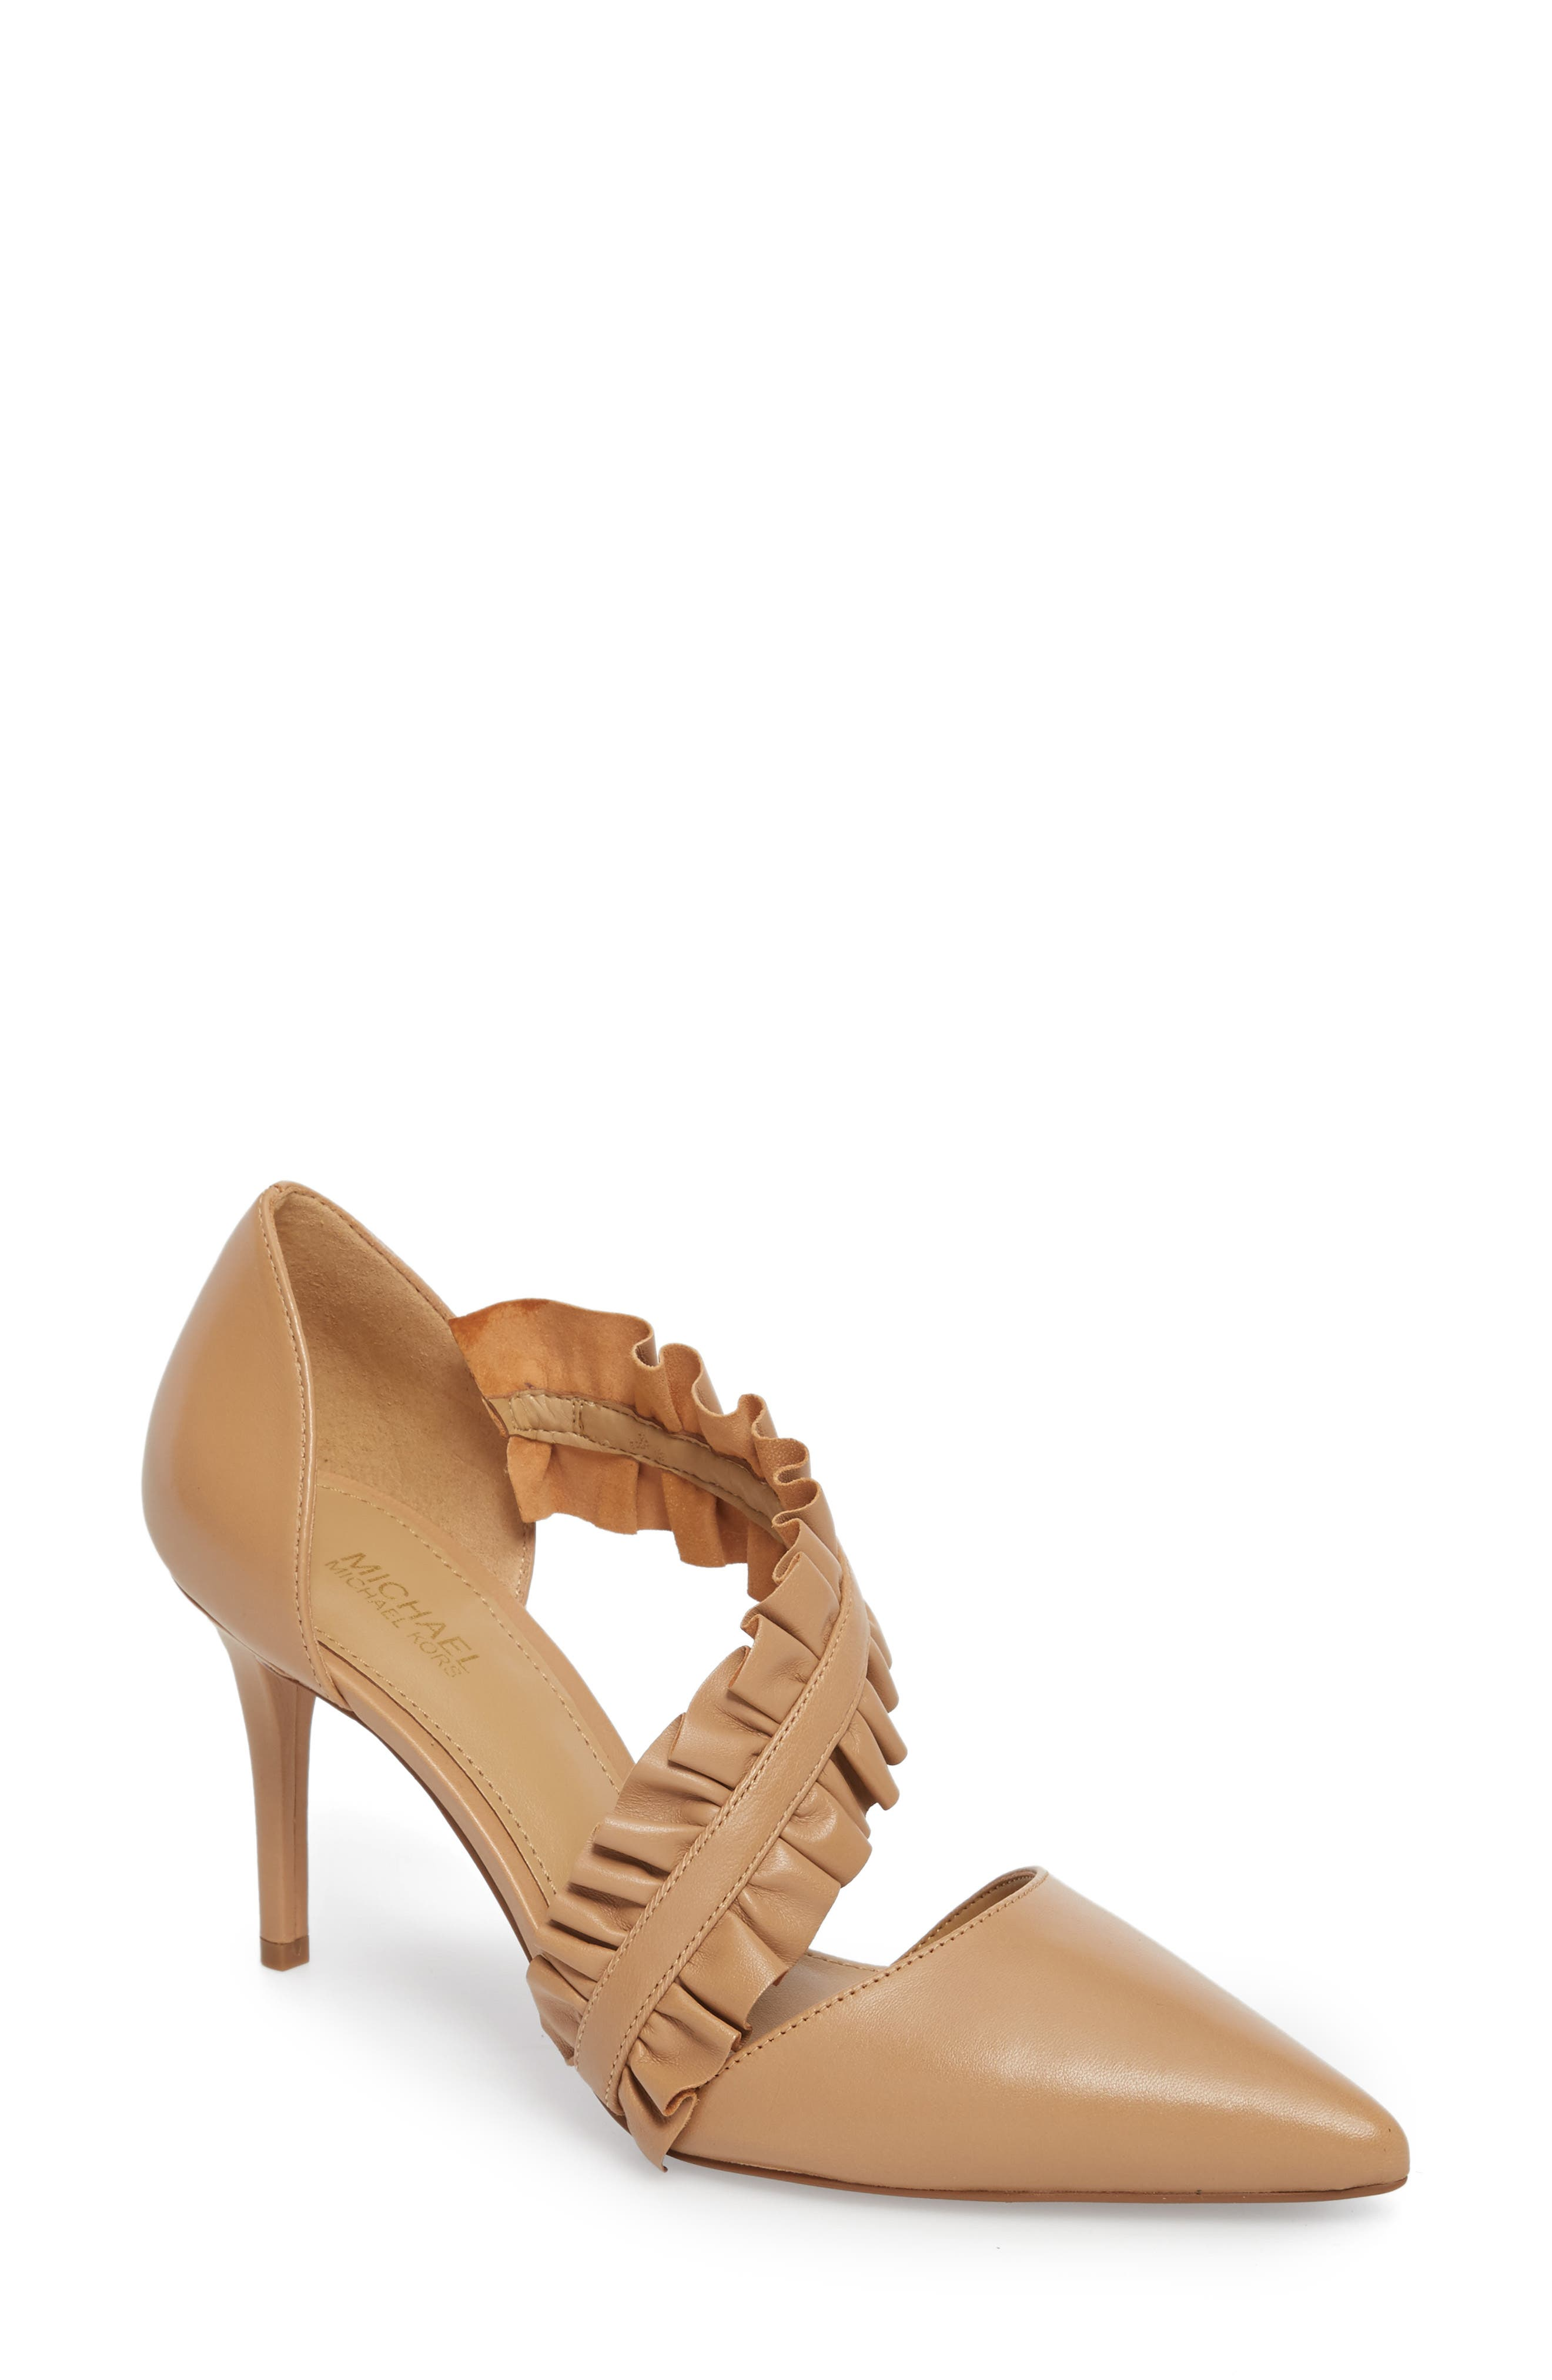 Alternate Image 1 Selected - MICHAEL Michael Kors Bella Ruffle Pump (Women)